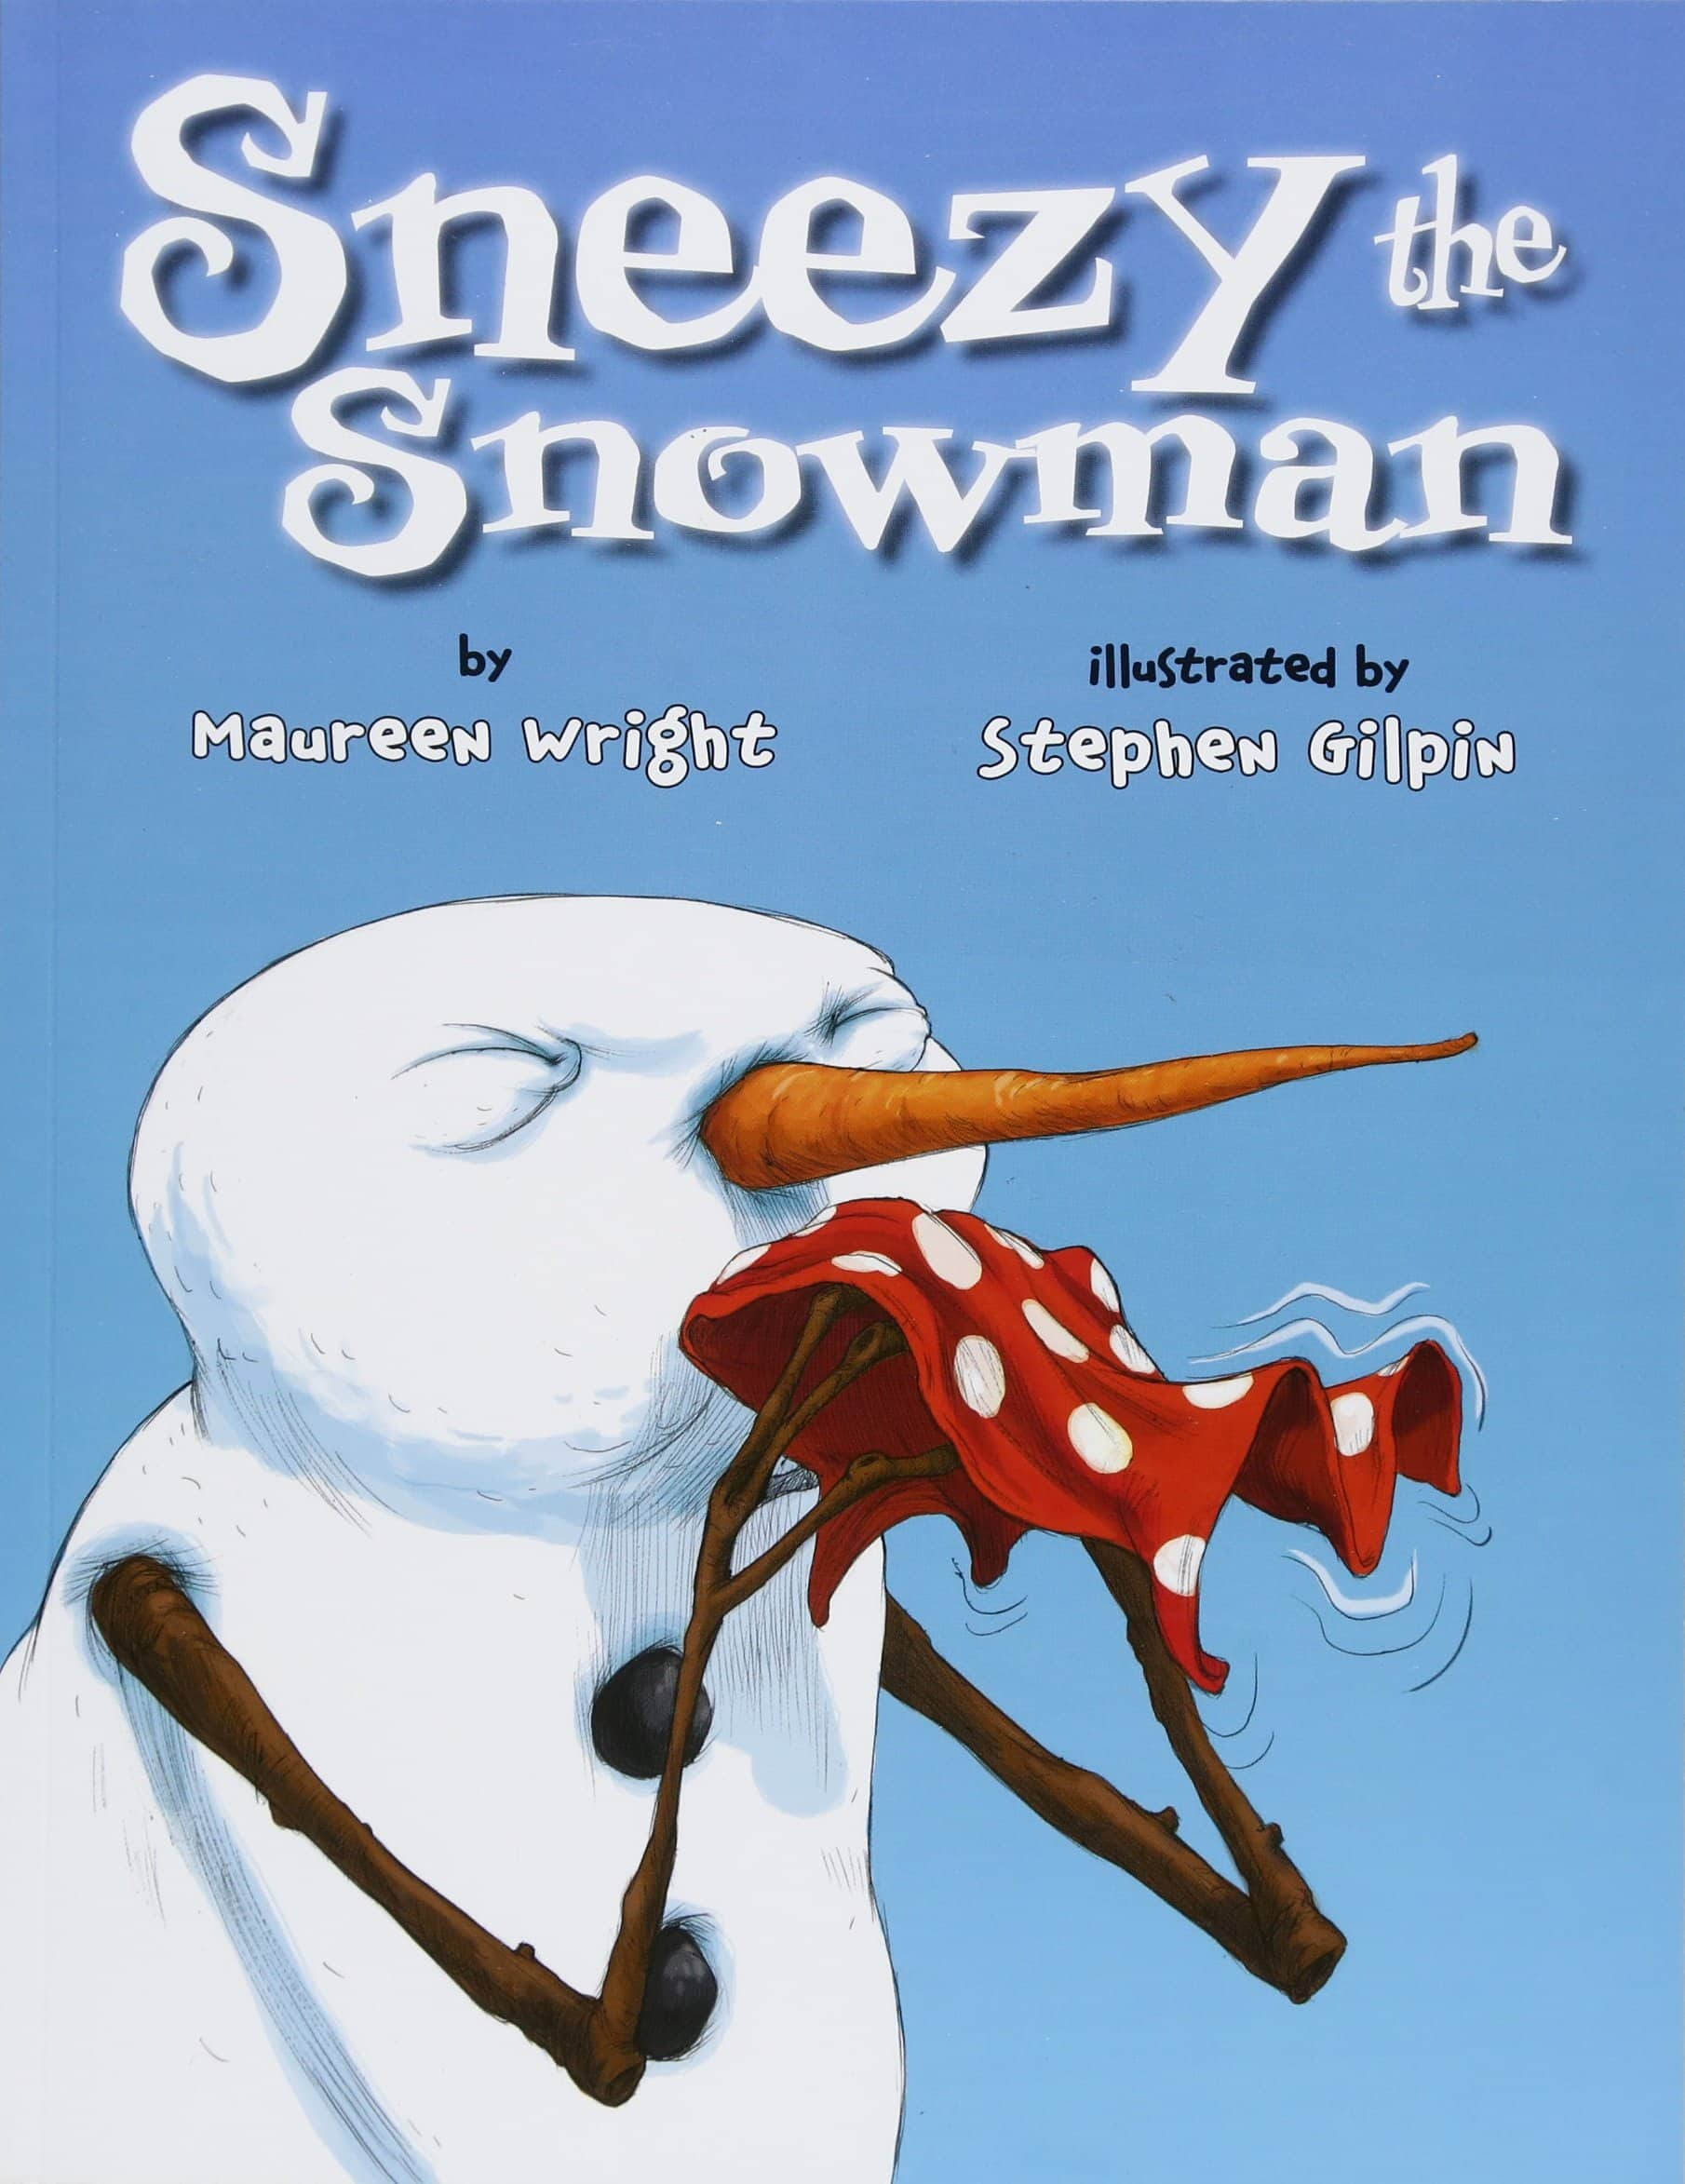 Sneezy the Snowman Paperback + $1 digital credit for slow ship: $2.49 *lowest price per CCC*